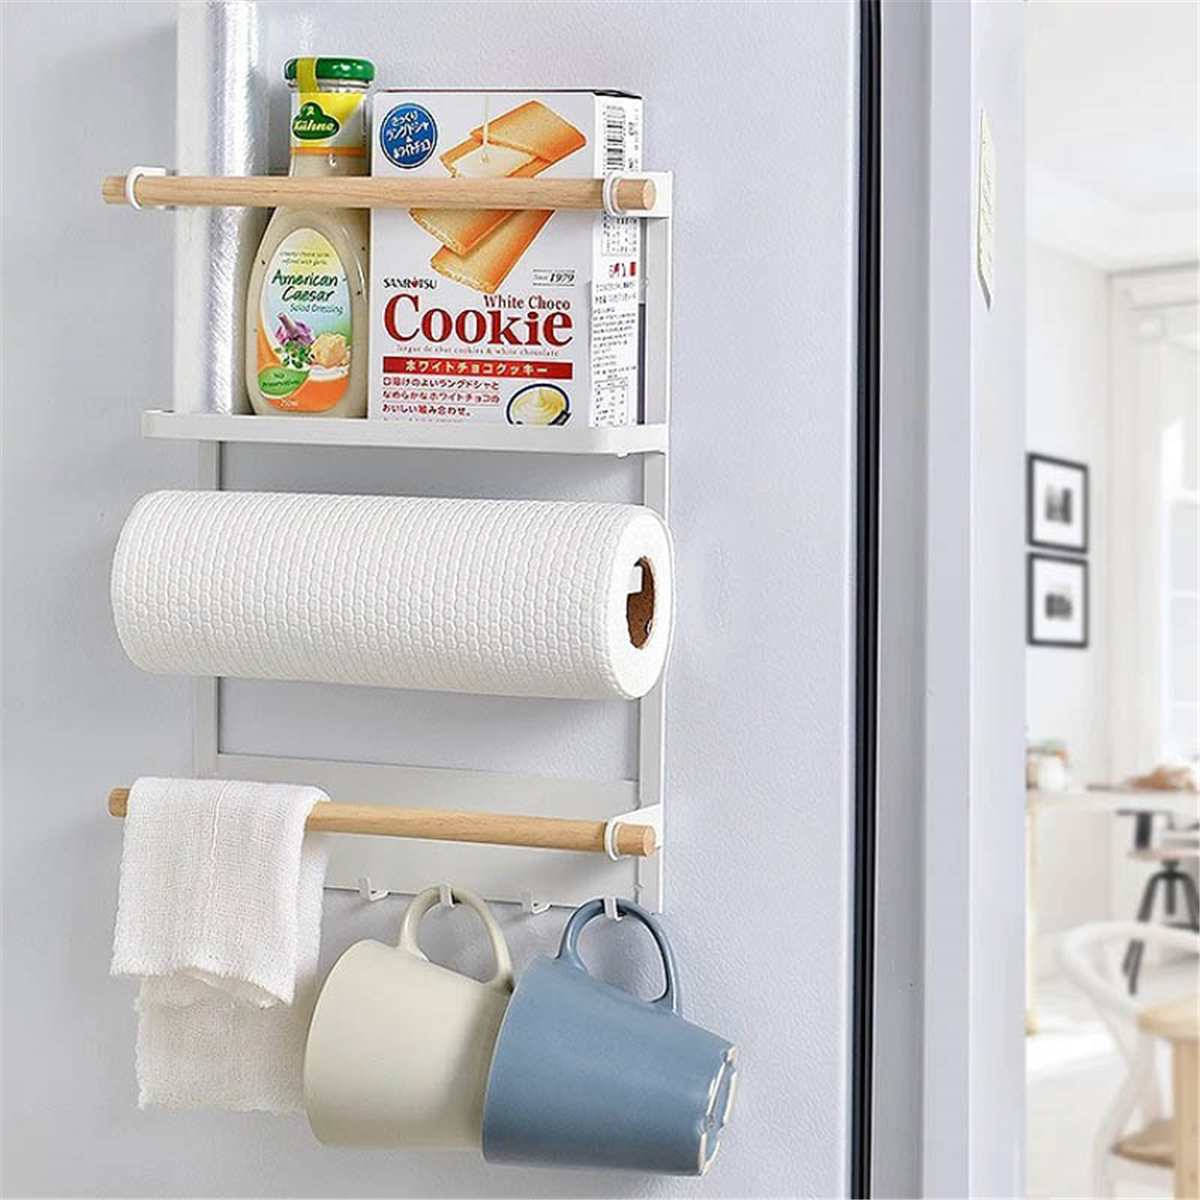 2 Color Kitchen Storage Rack Fridge Magnetic Organizer Paper Towel Holder Rustproof Spice Jars Rack Metal Shelf Kitchen Supplies